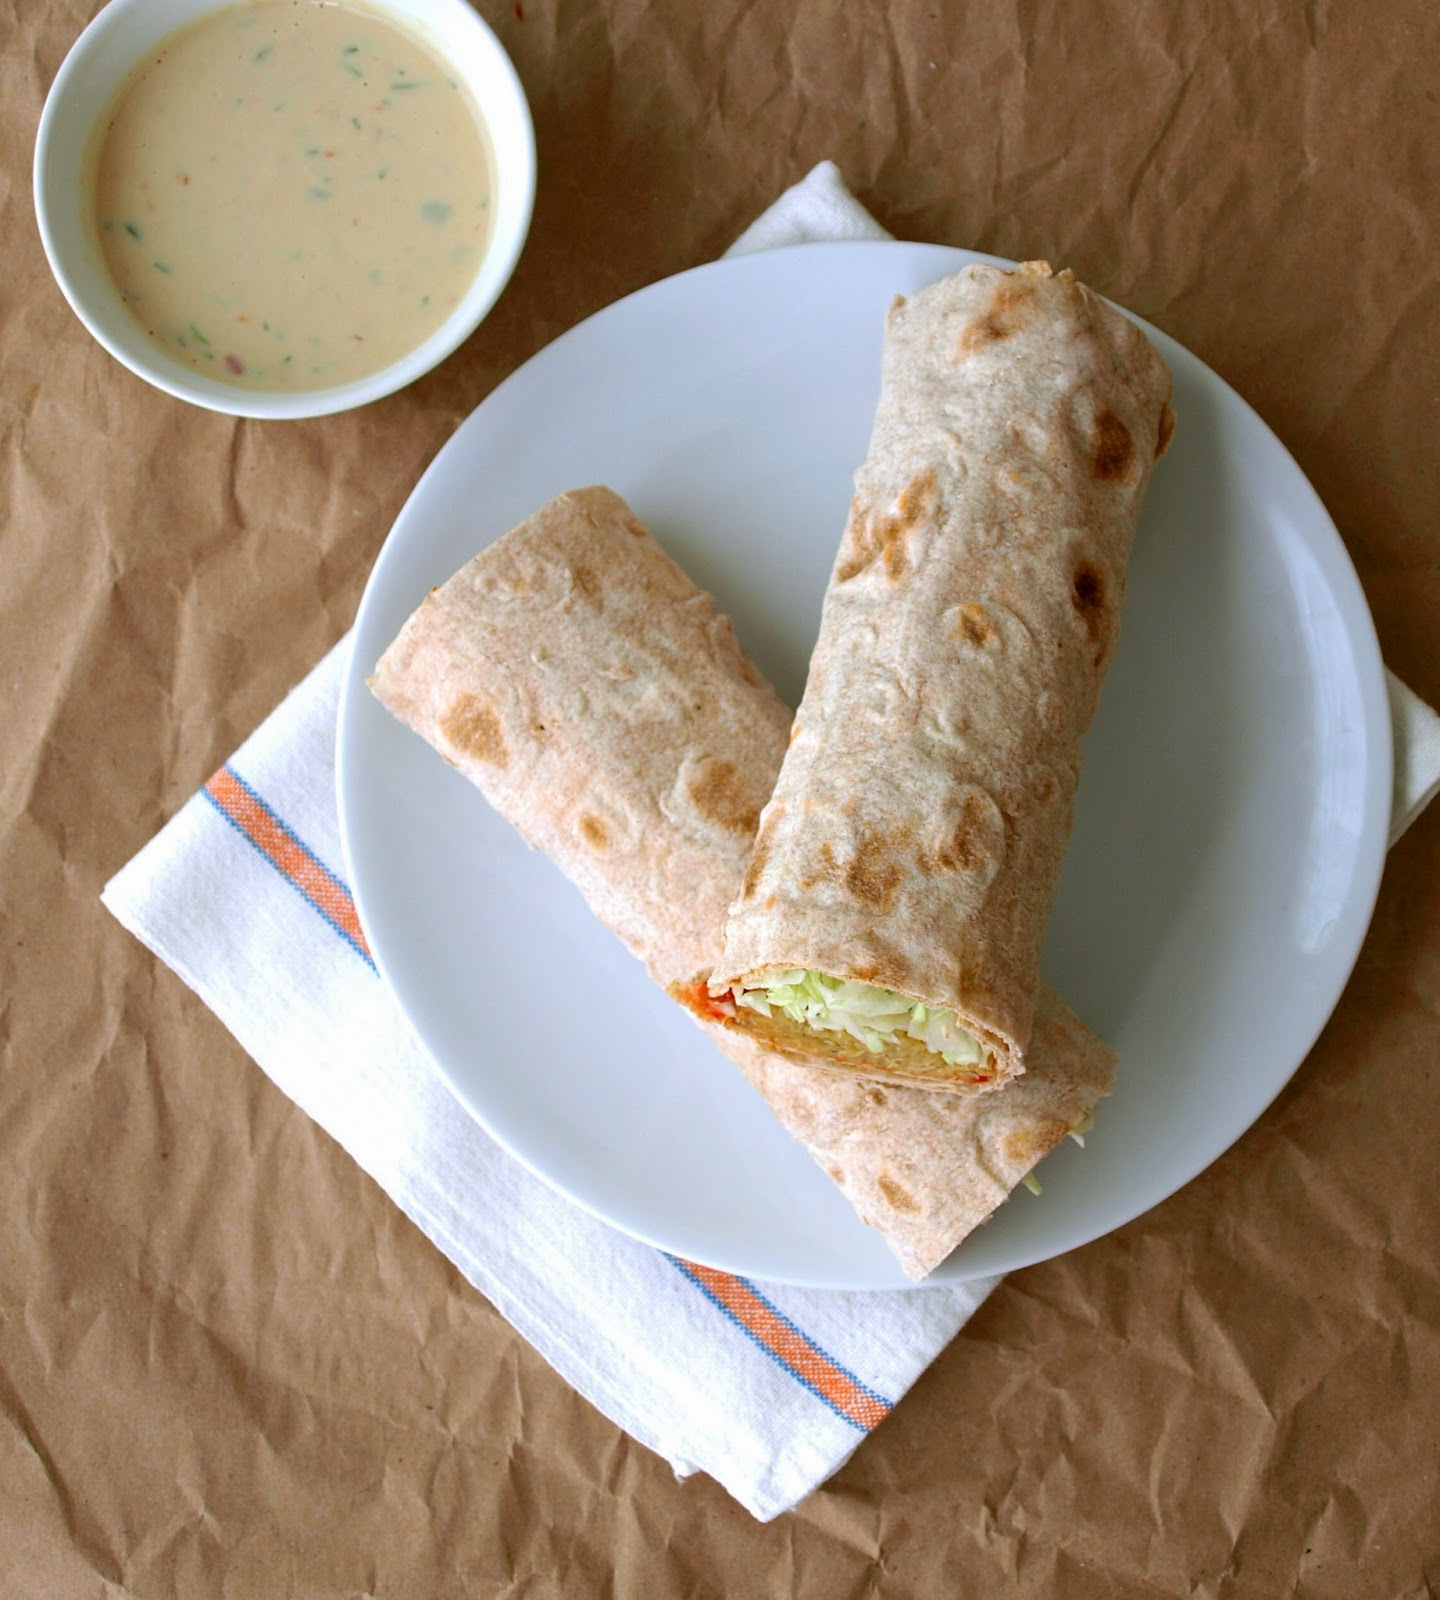 ... SIMPLE VEGANISTA: Spicy Lentil & Quinoa Wraps with Spicy Tahini Sauce